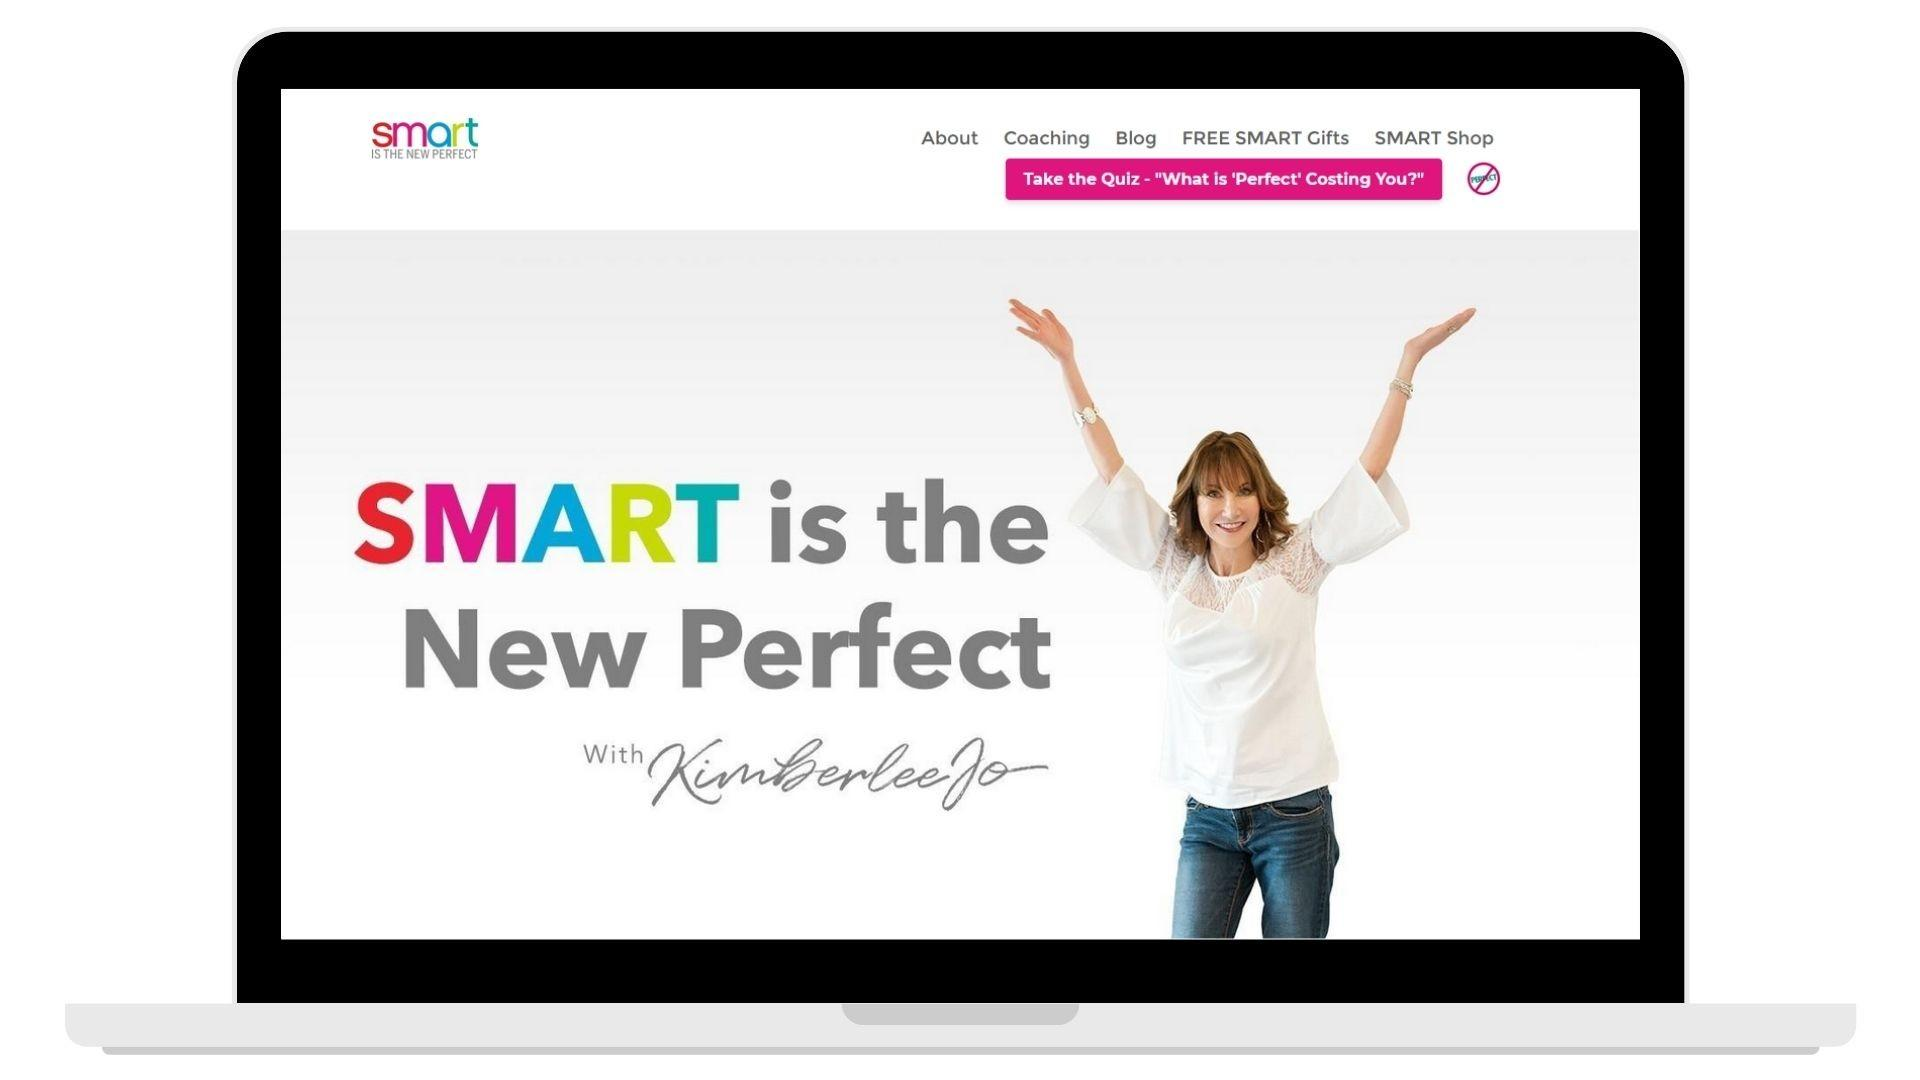 Smart is the New Perfect's Website image